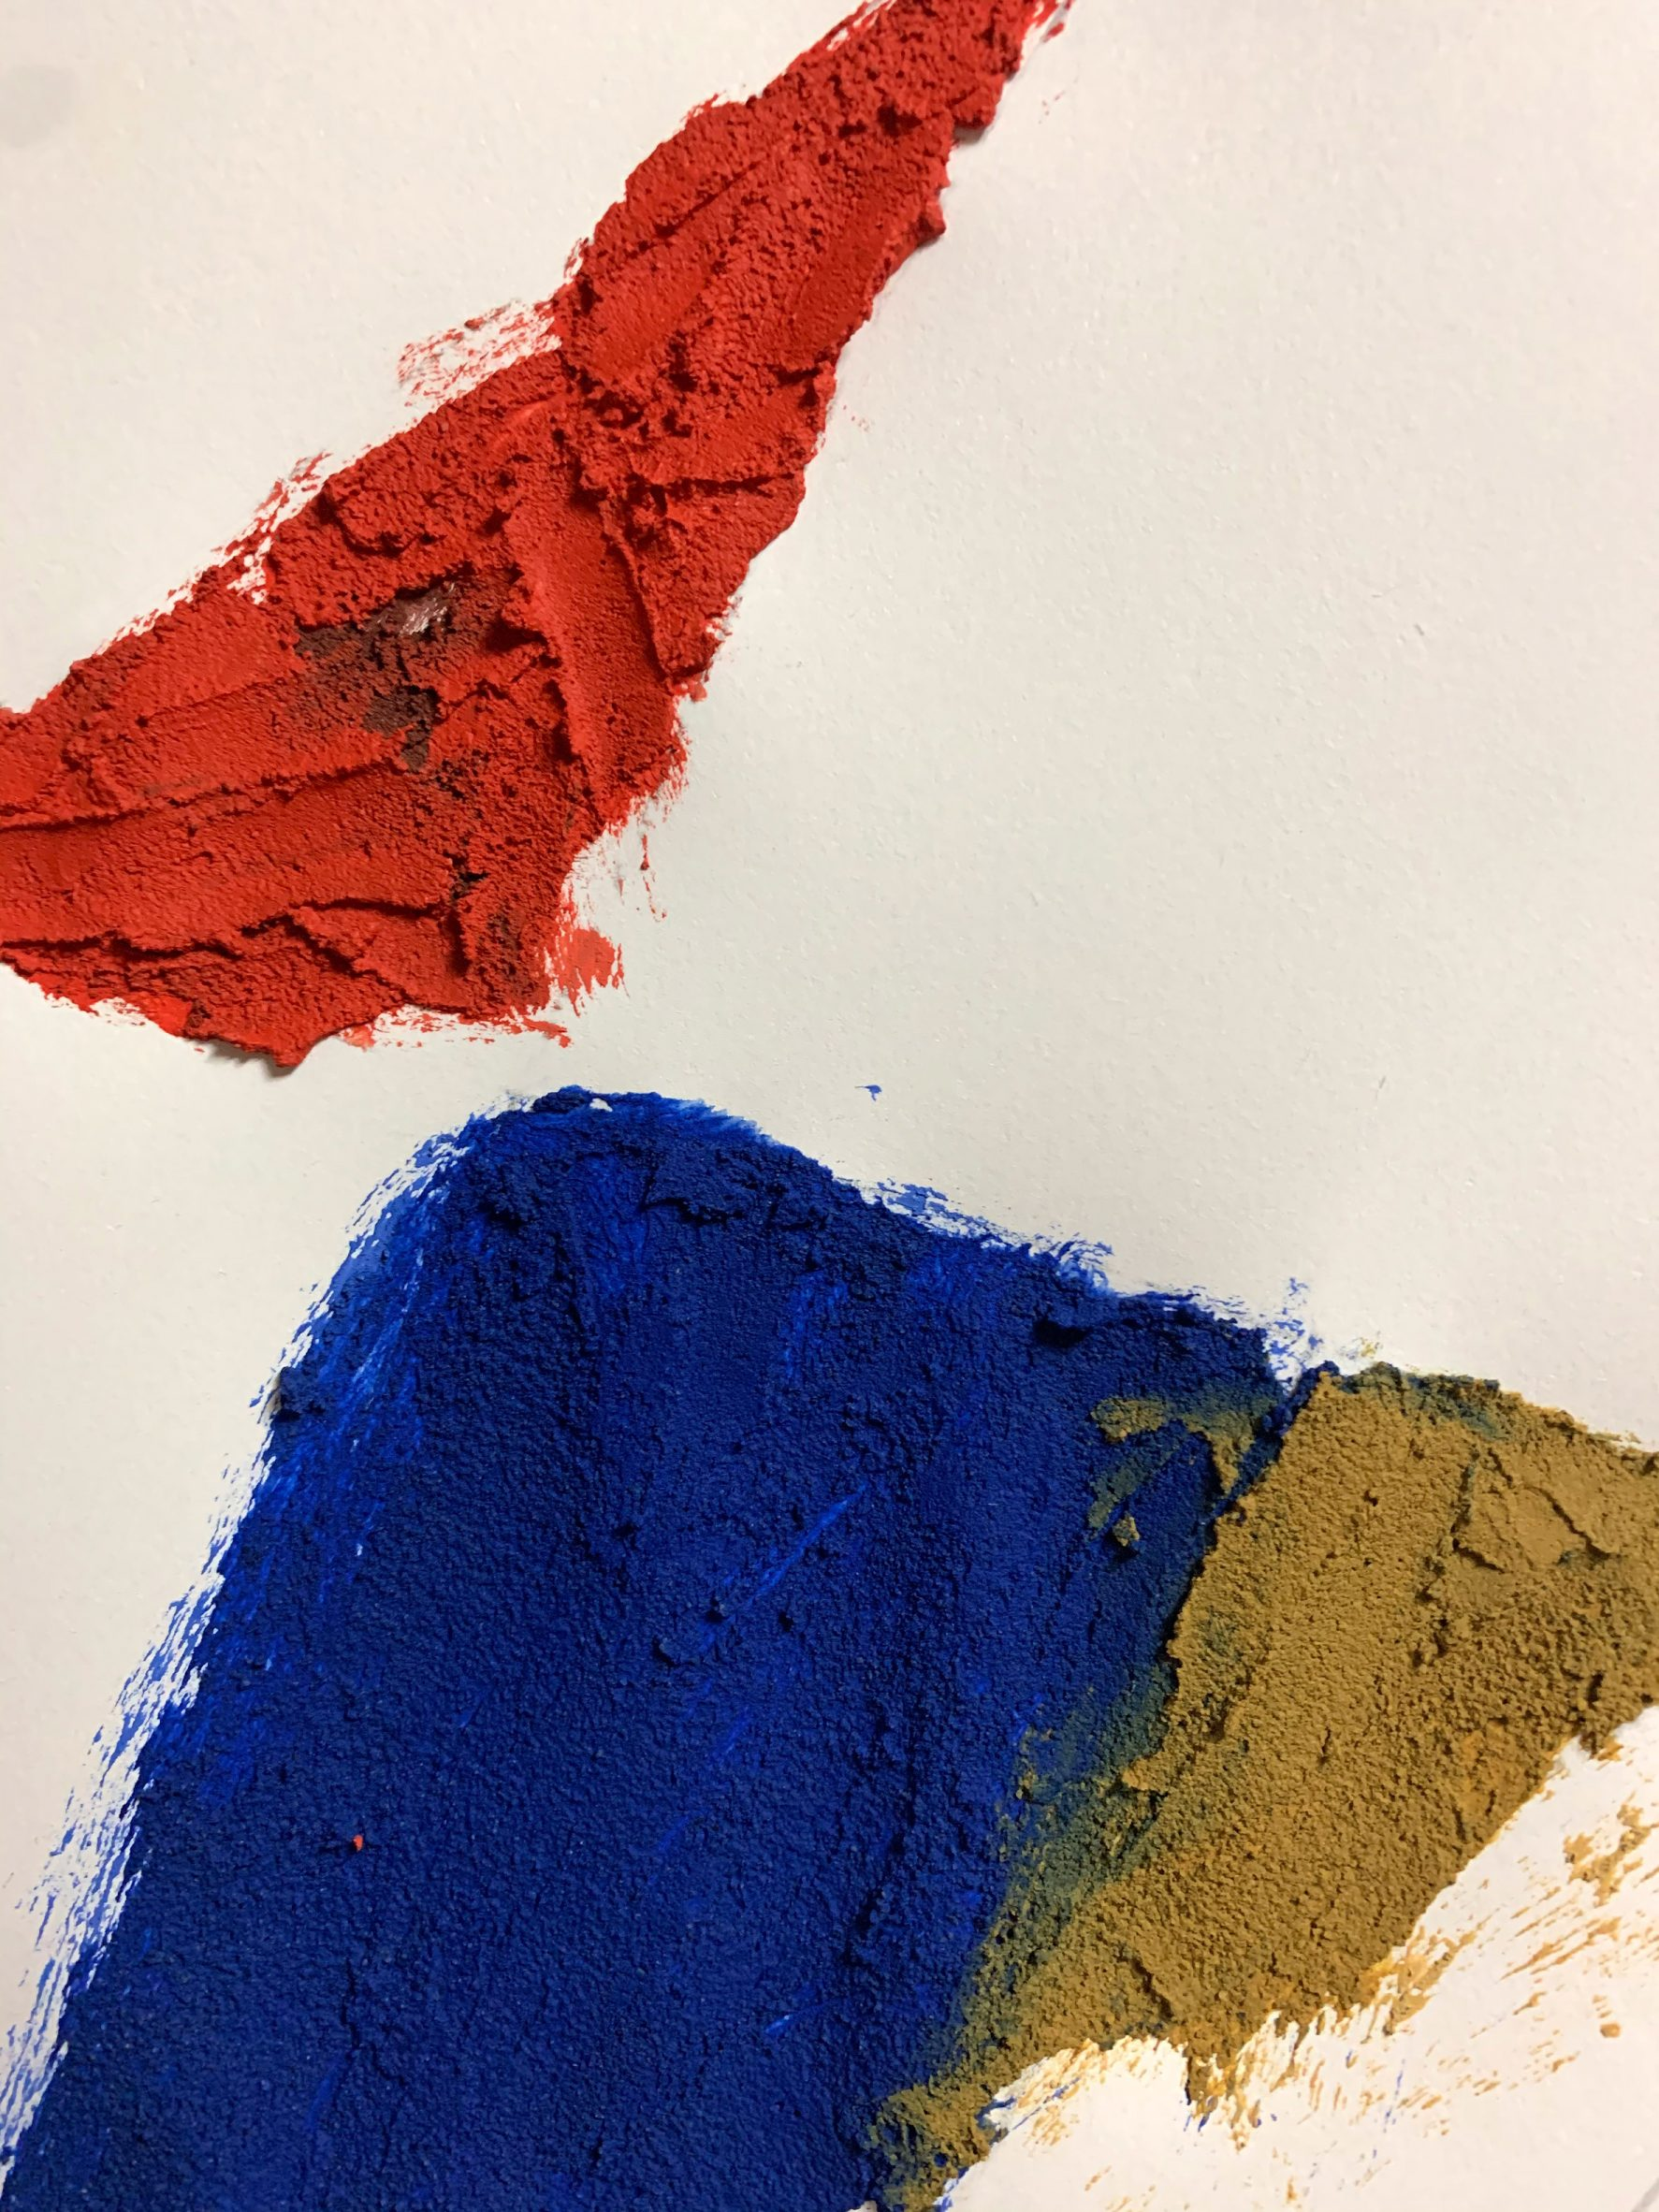 Celour in red, blue and yellow